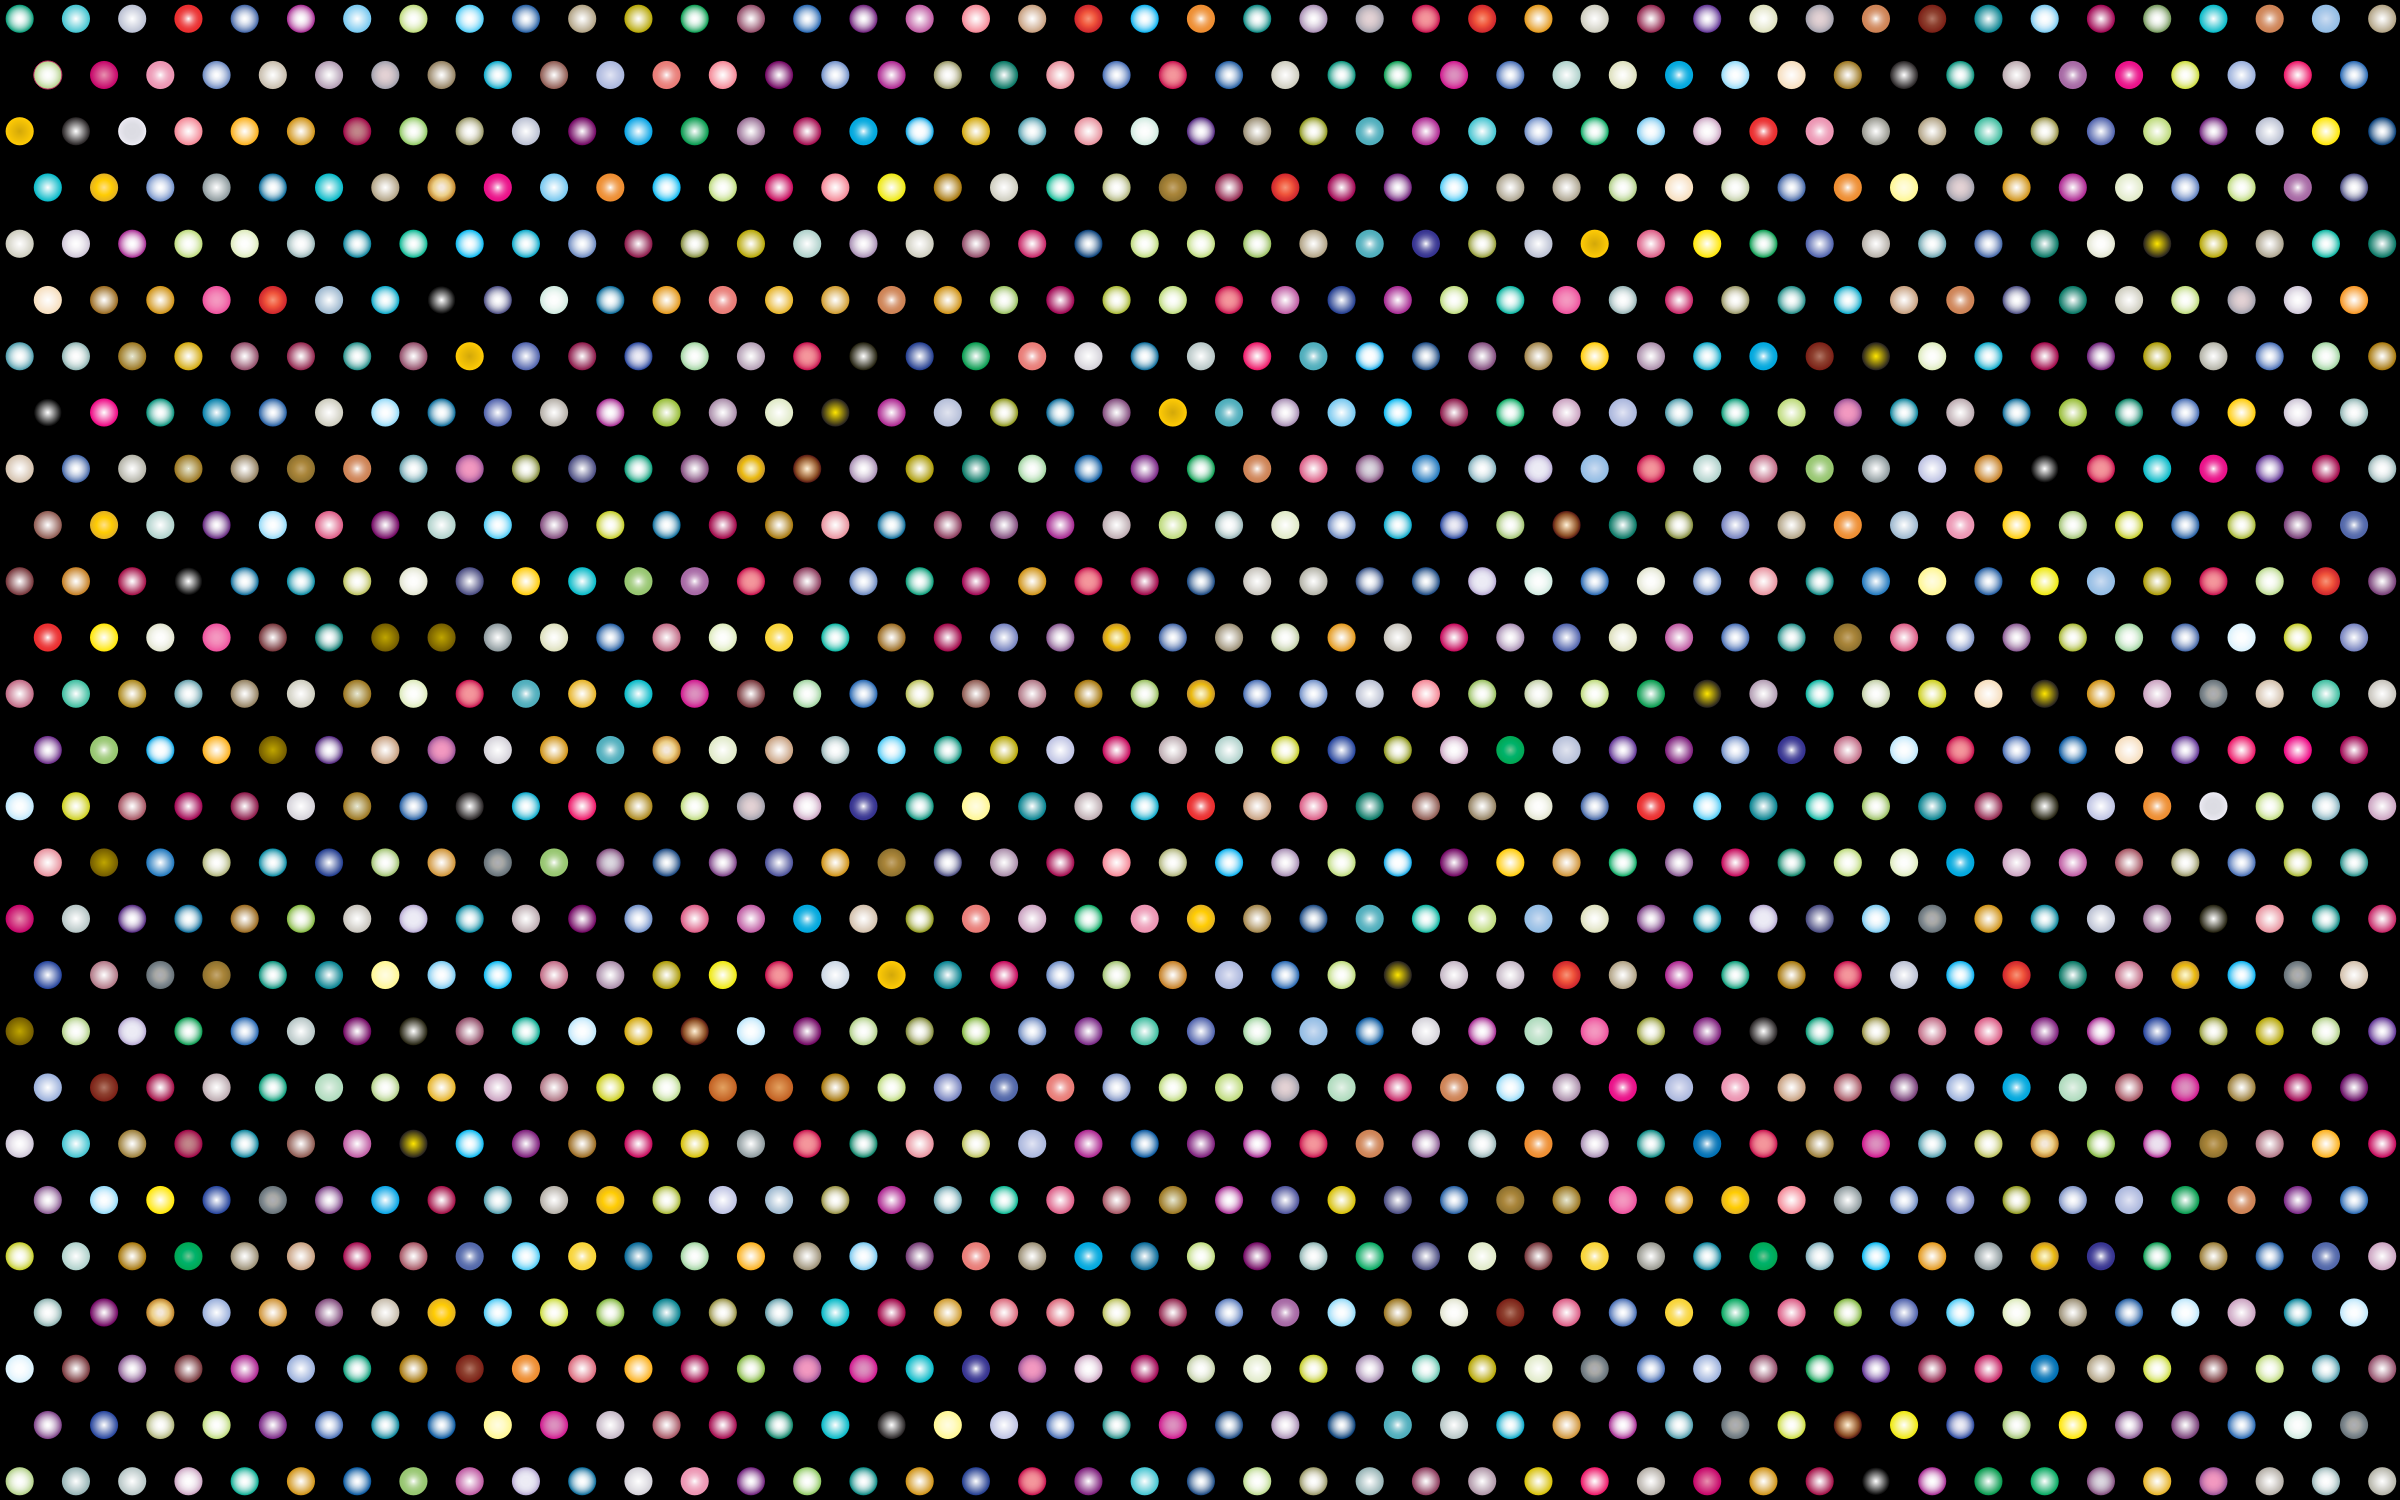 Prismatic Polka Dots Mark II 2 by GDJ